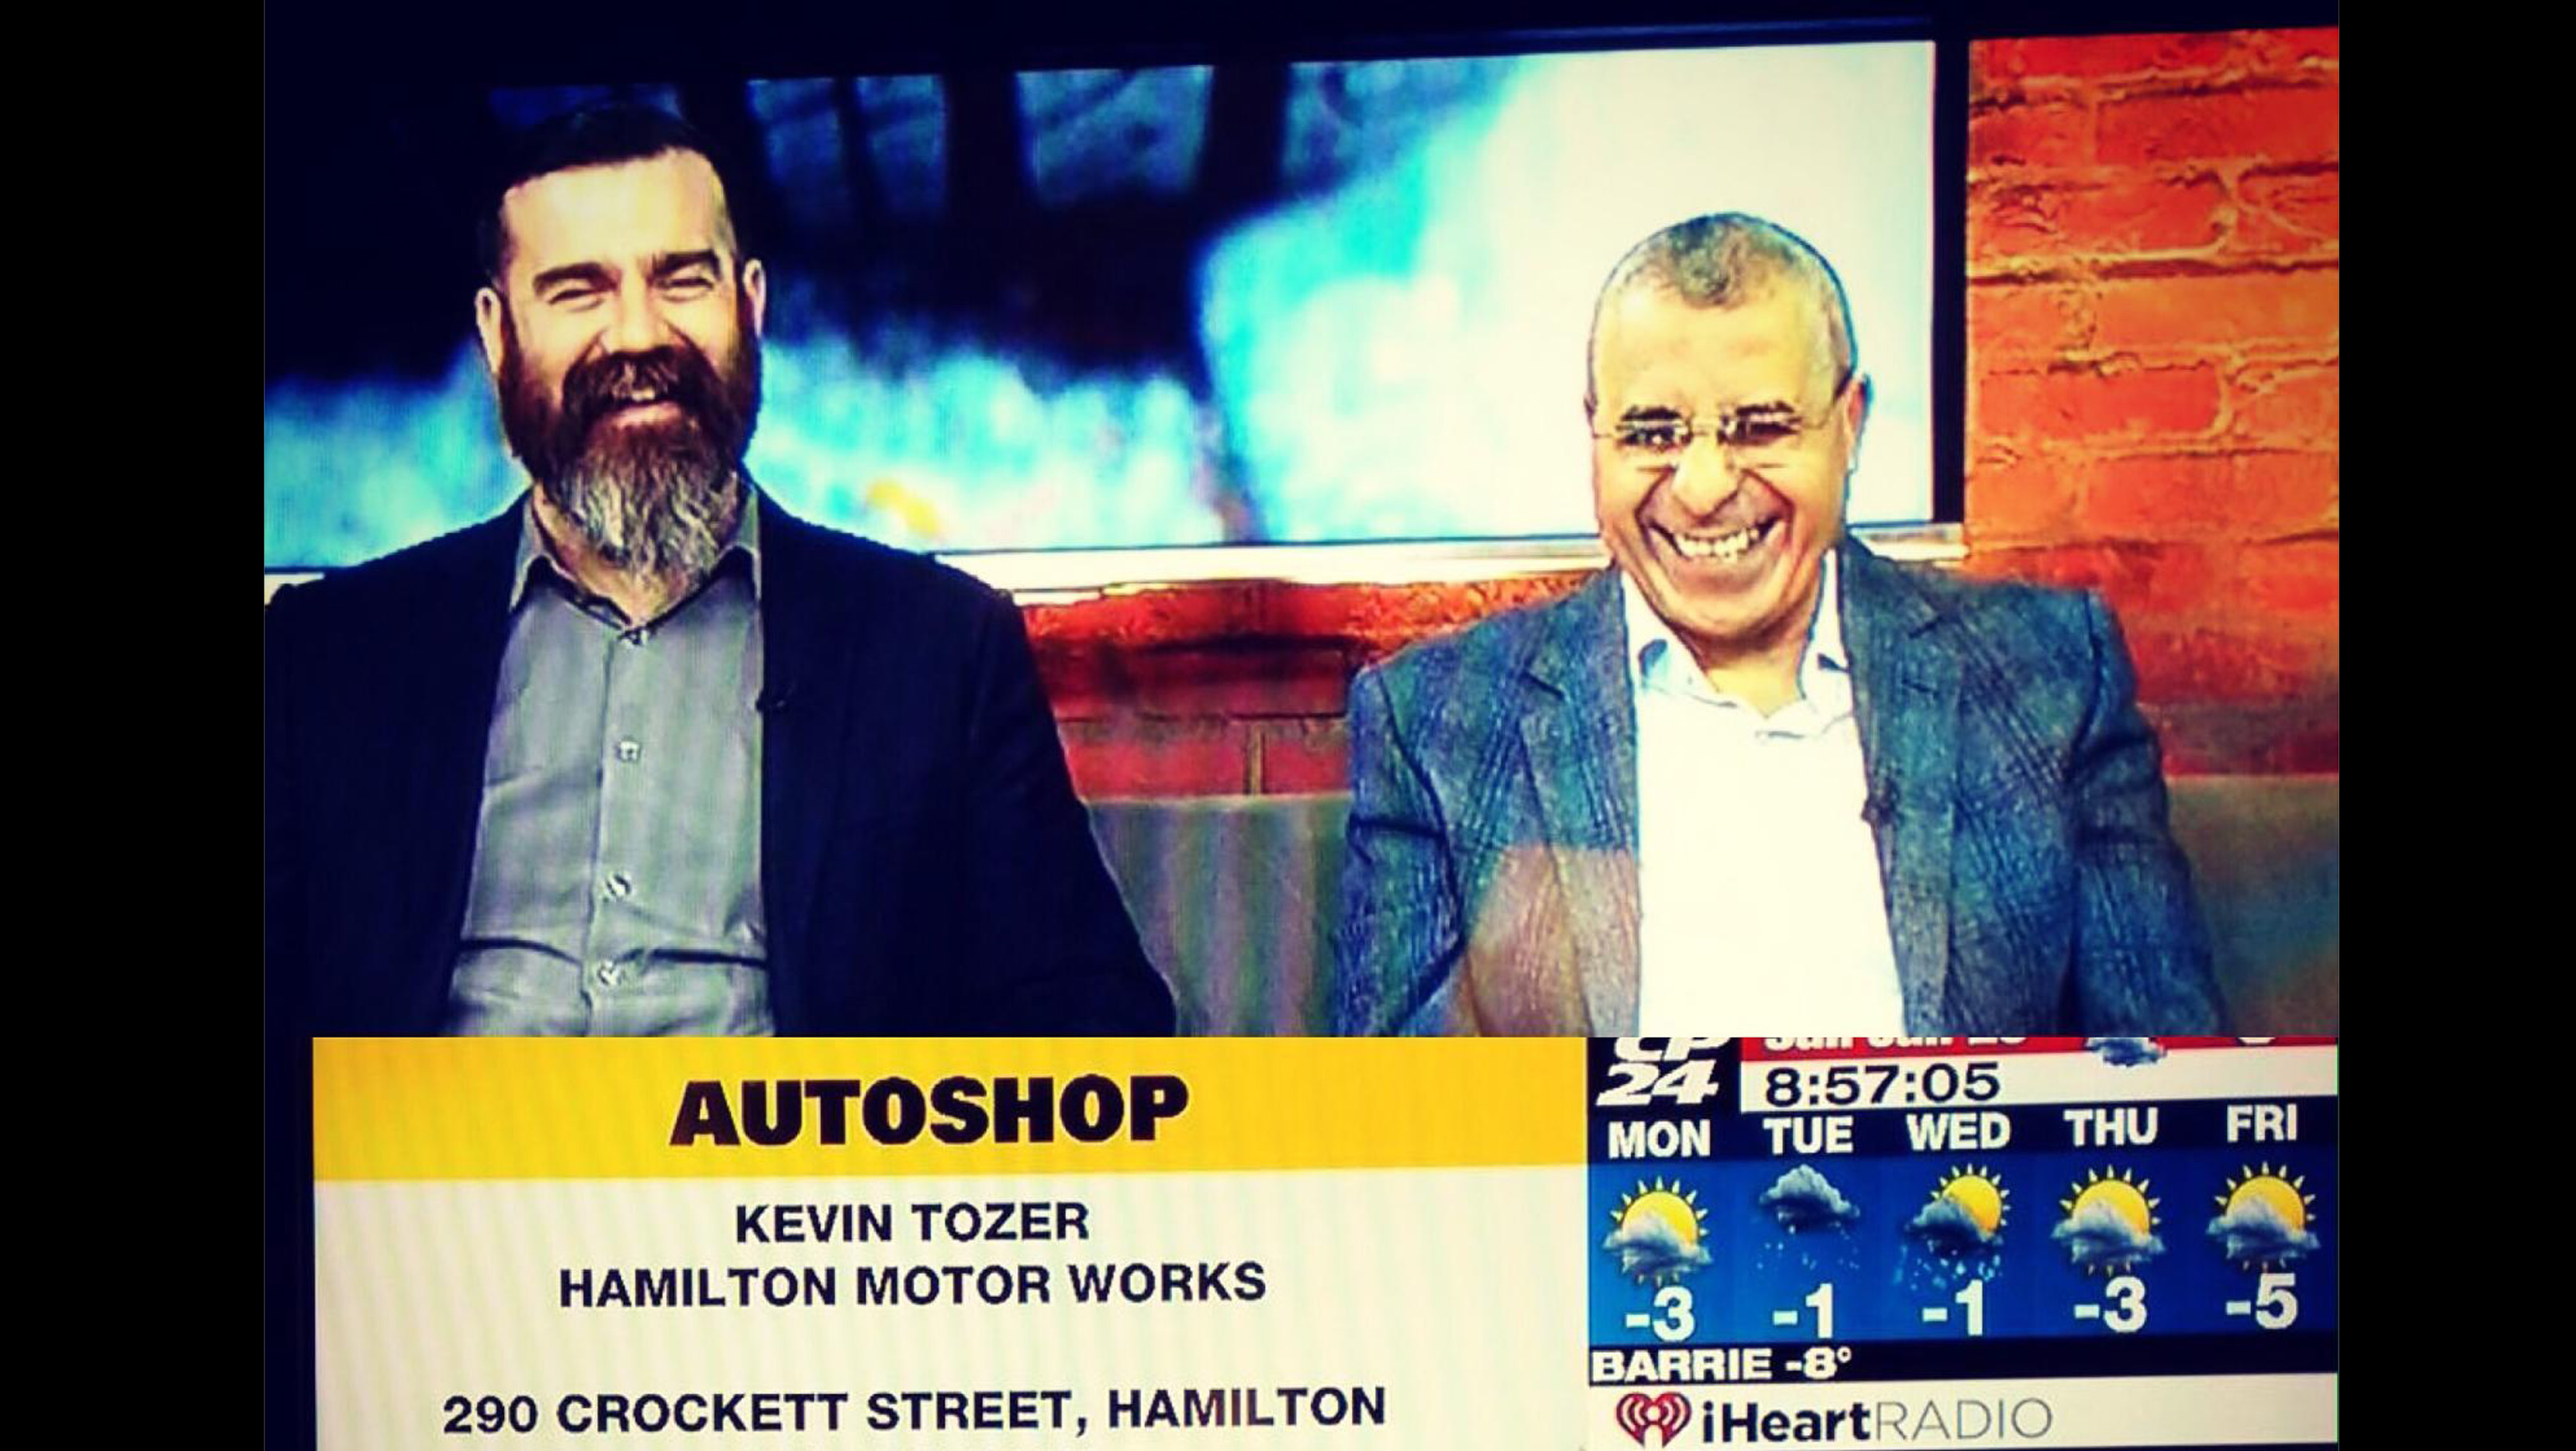 AutoShop TV